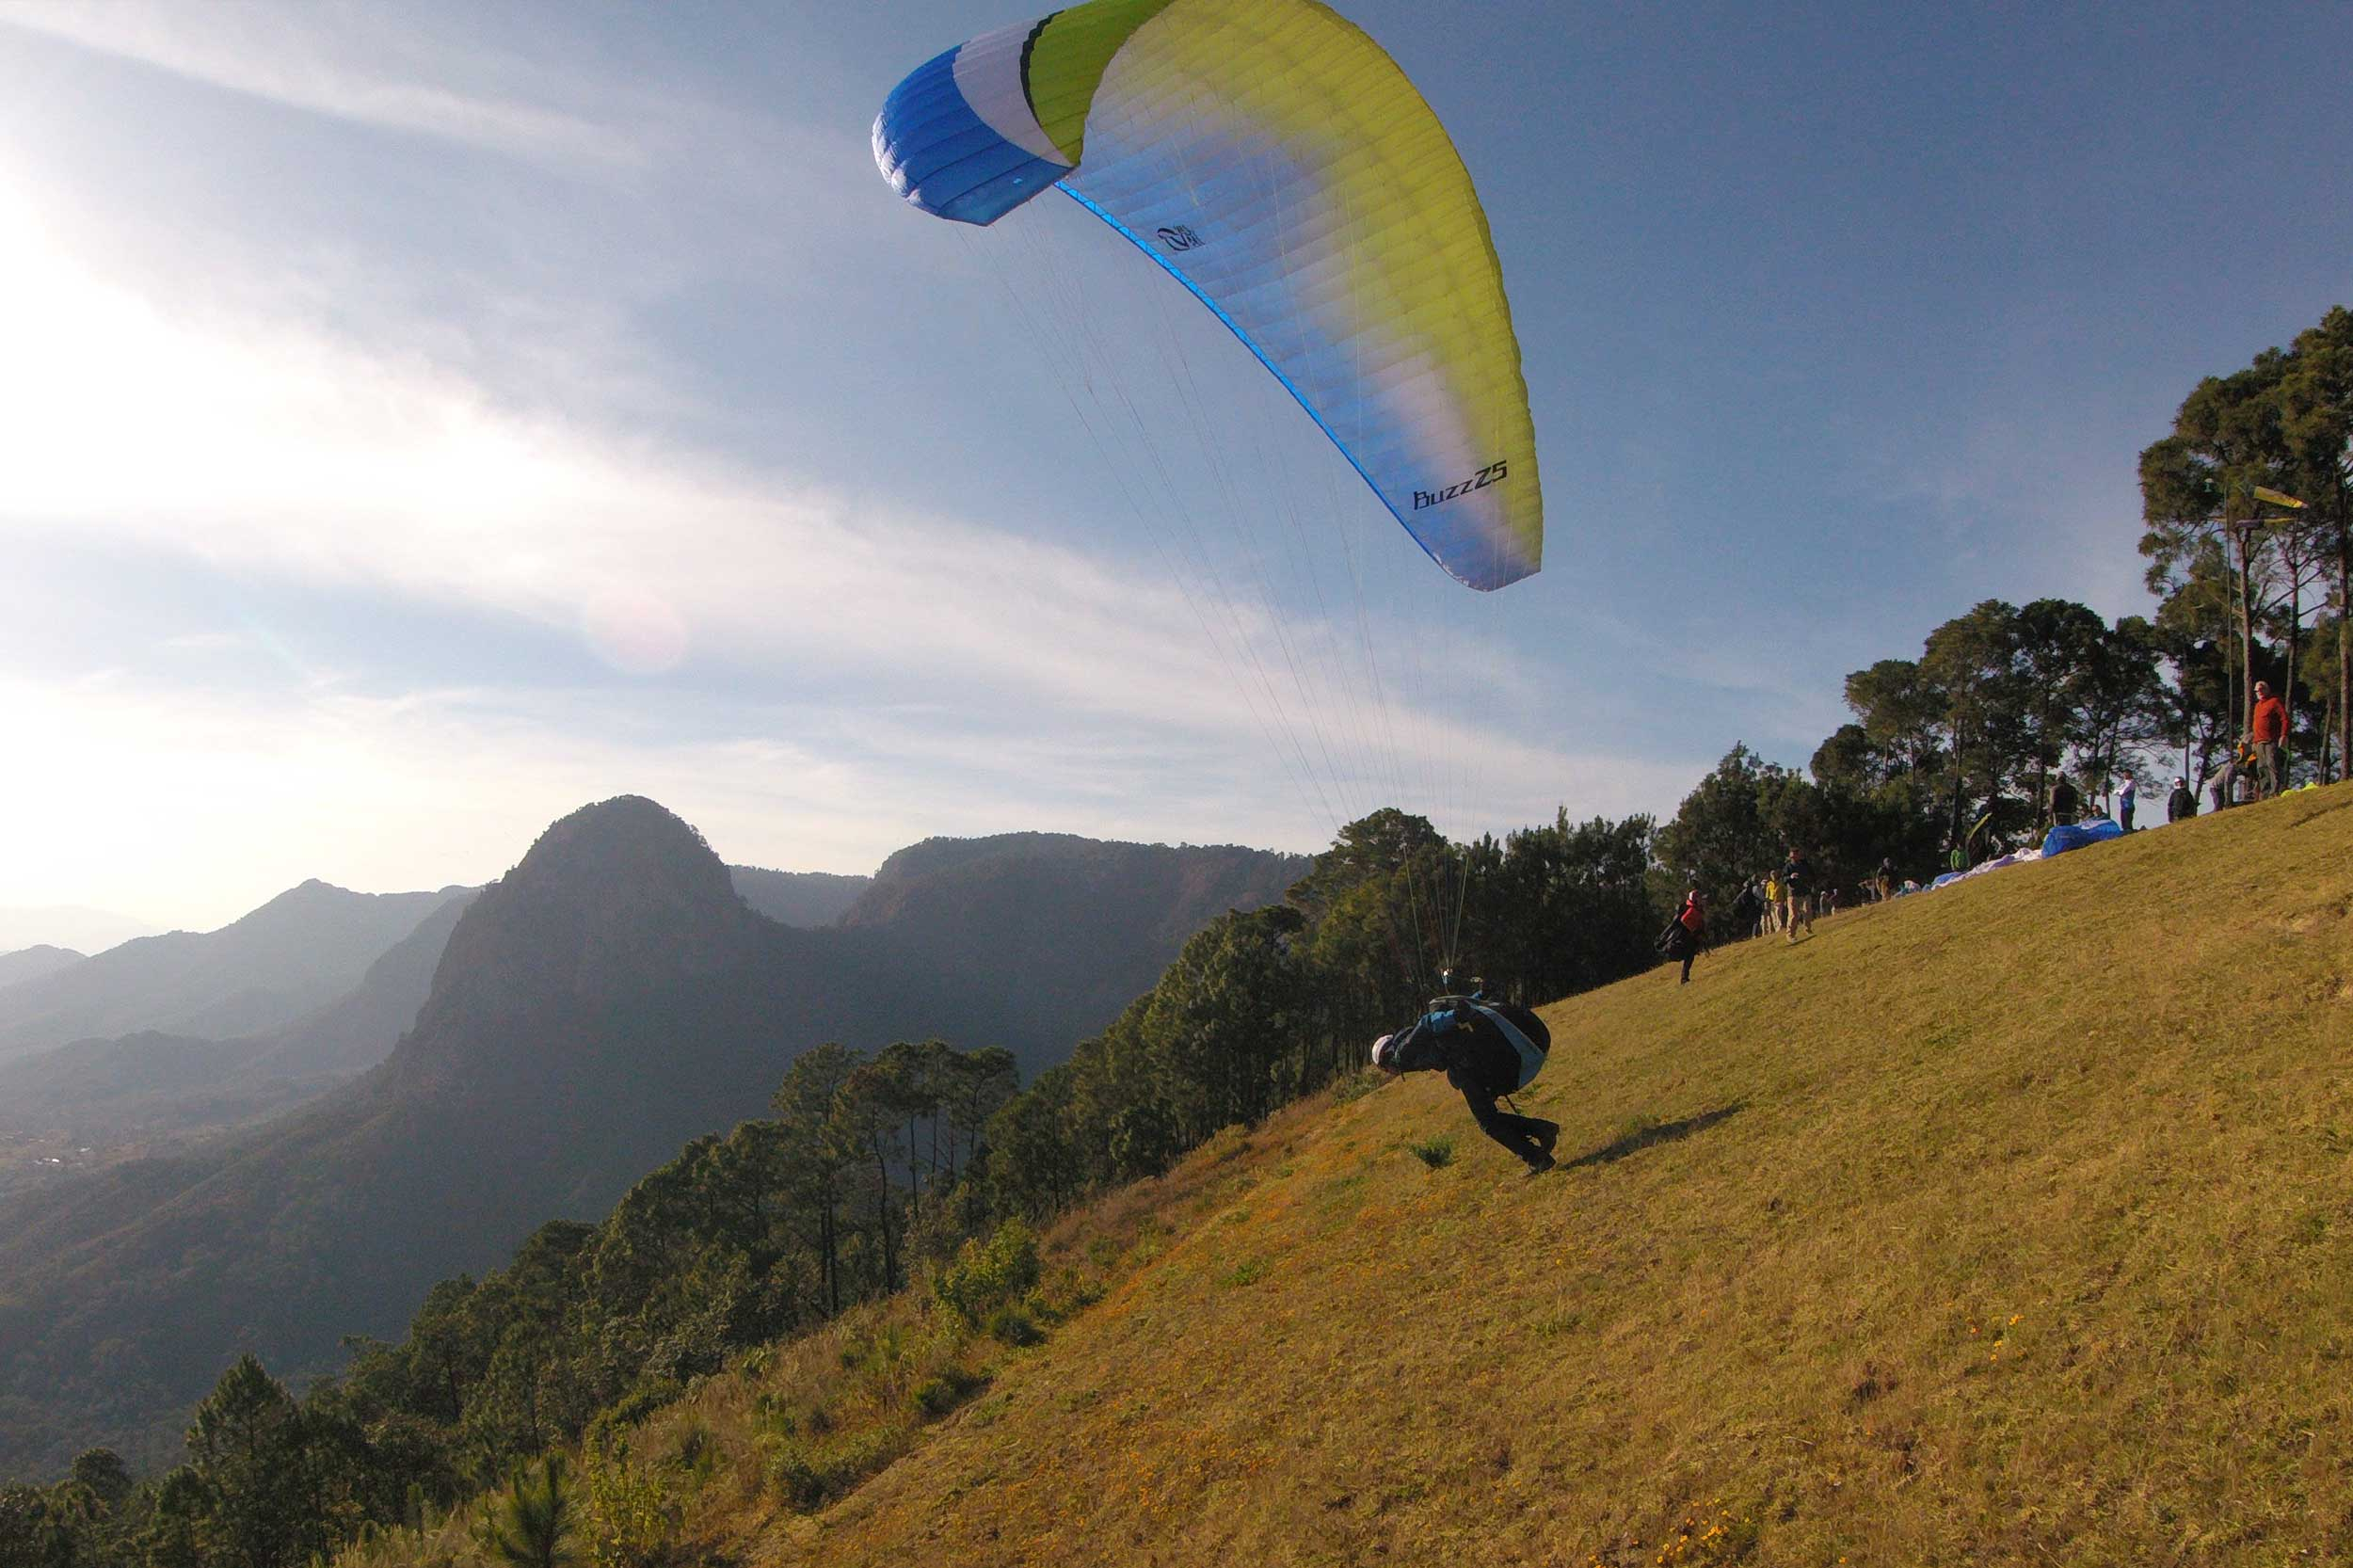 Paraglide-New-England-Trips-Valle-de-Bravo-Mexico-Gallery-Ehsan-Launch.jpg